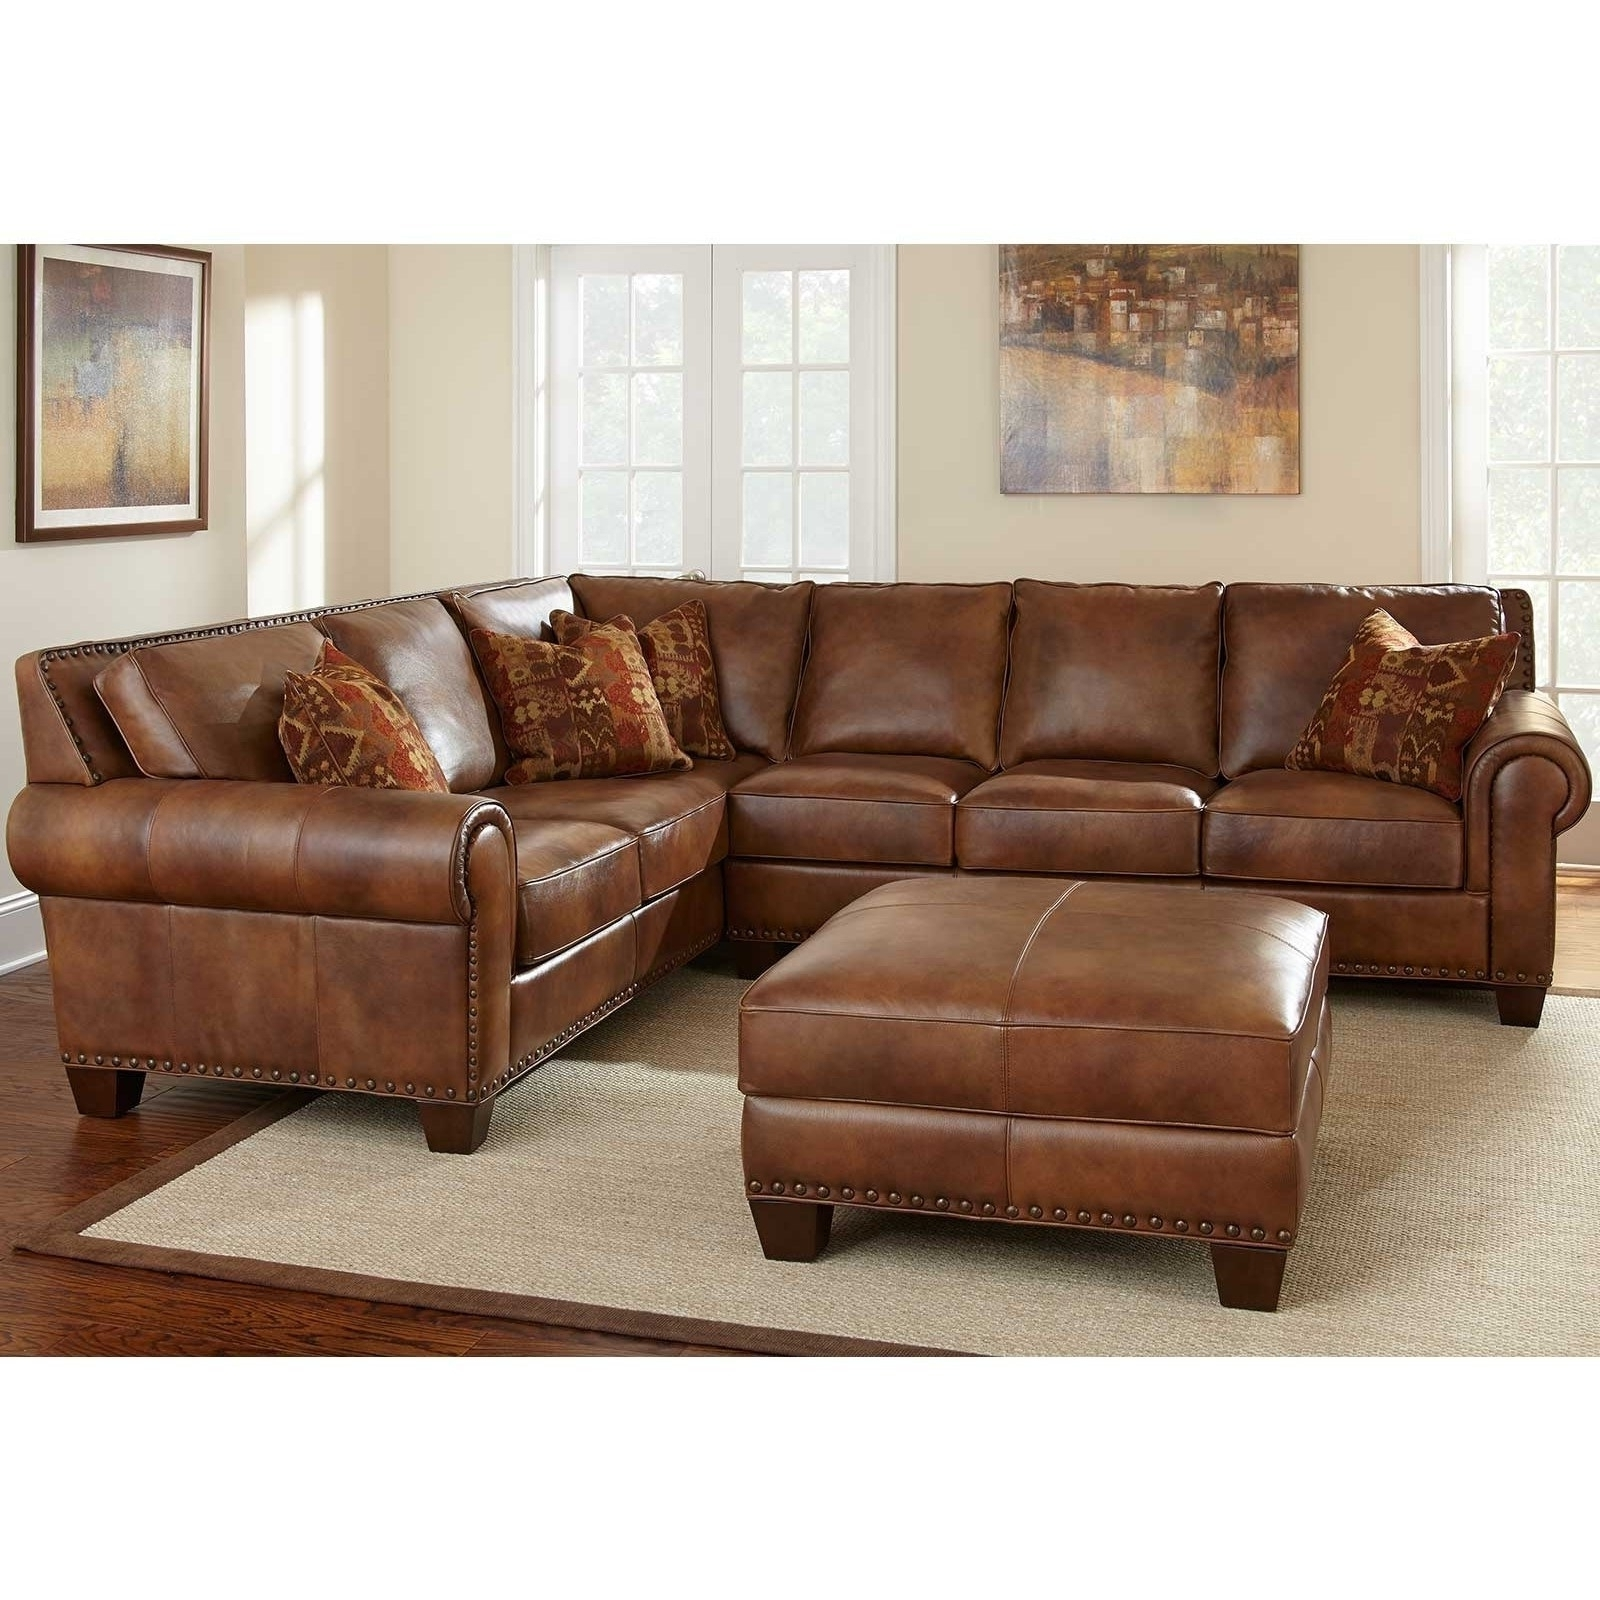 Macys Leather Sectional Sofas Pertaining To Popular White Leather Sectional Sofa Macy's • Leather Sofa (View 11 of 20)